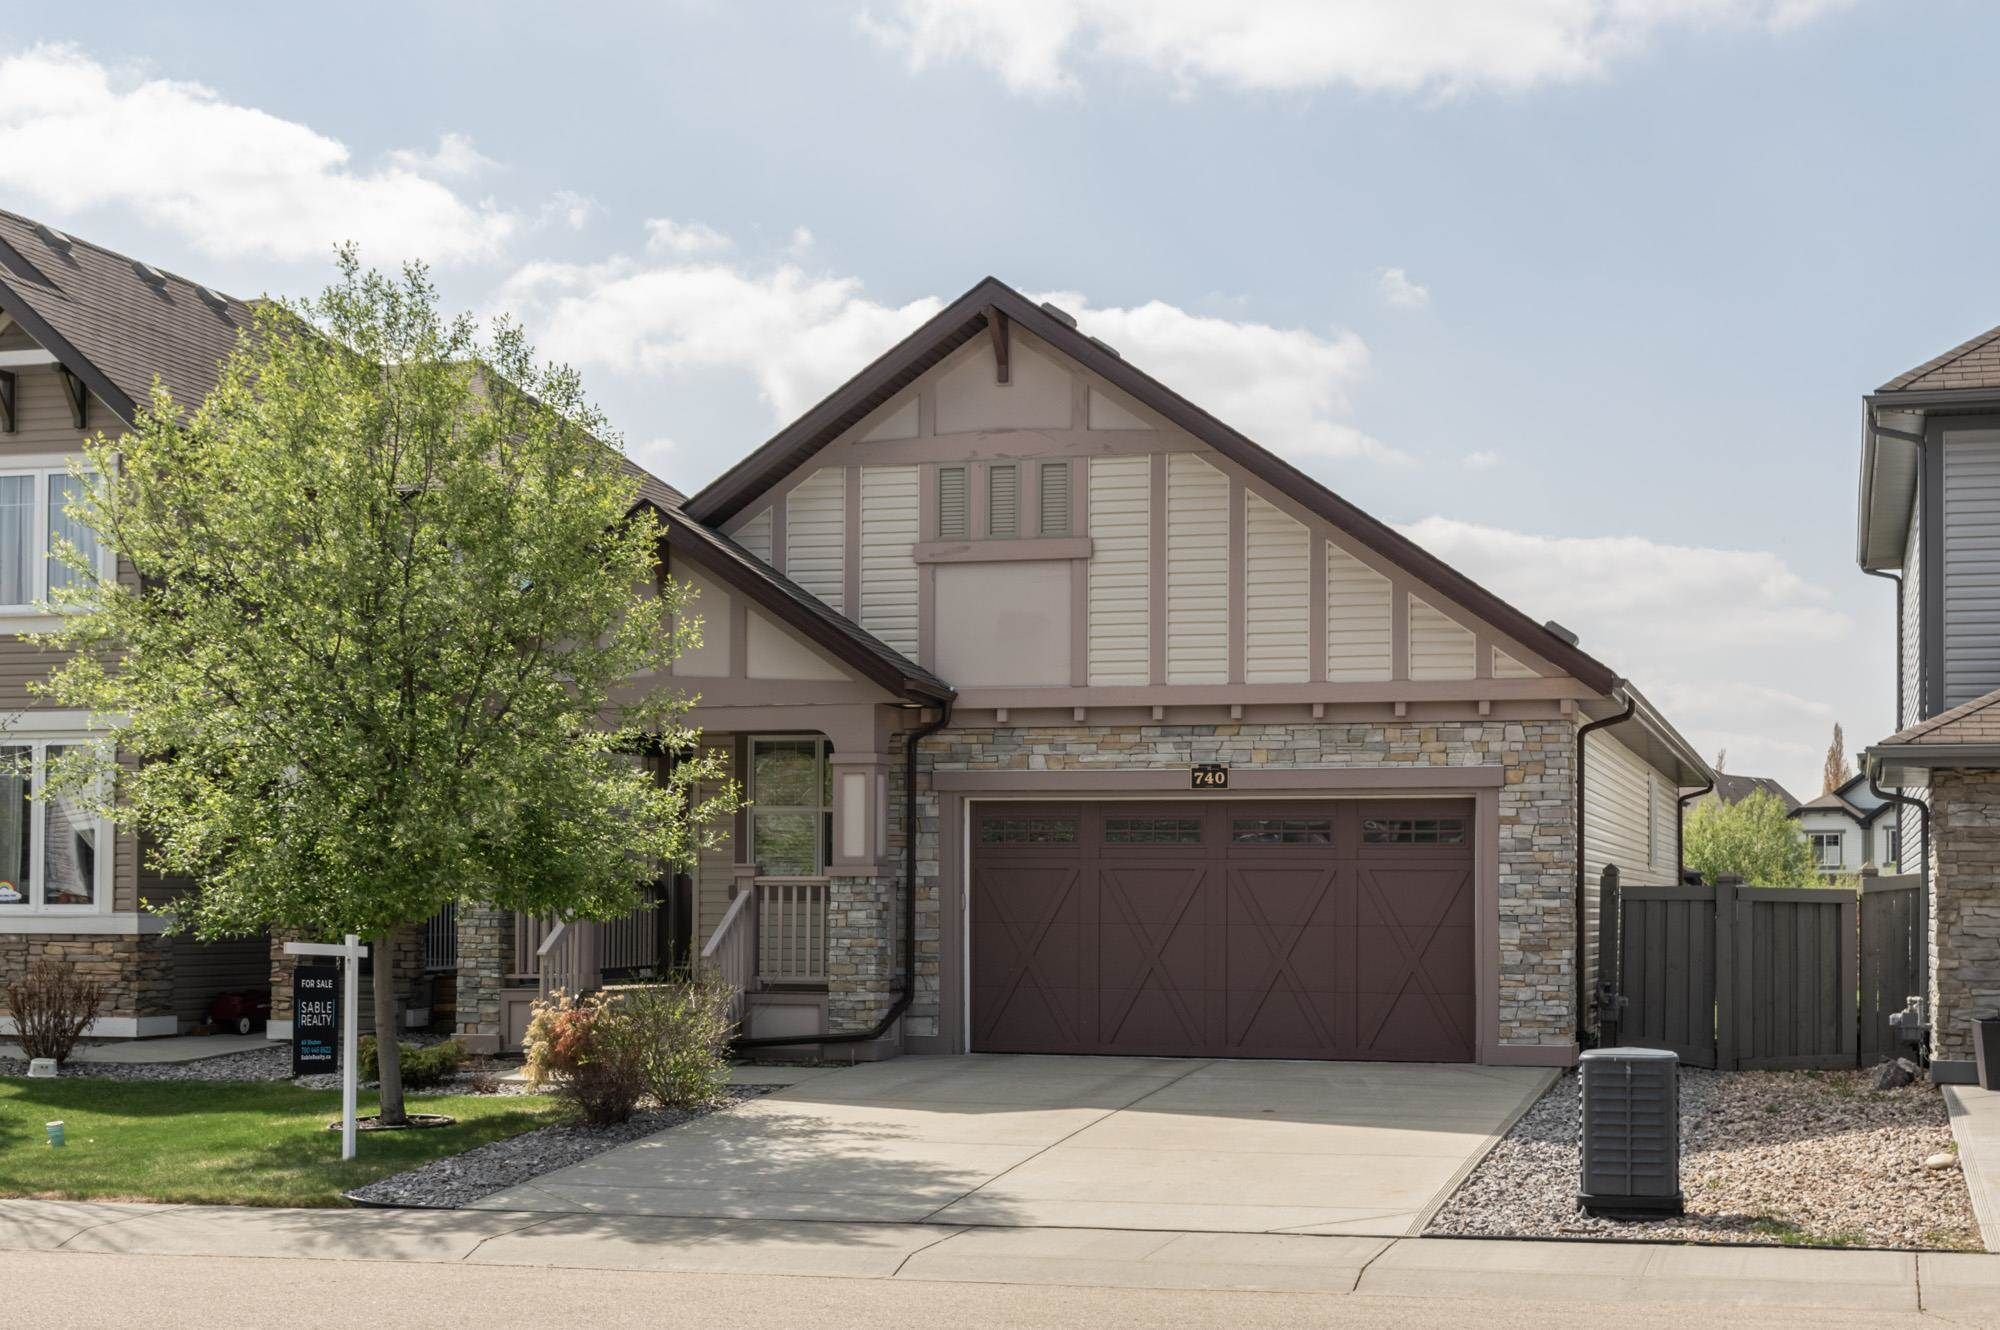 Main Photo: 740 HARDY Point in Edmonton: Zone 58 House for sale : MLS®# E4245565